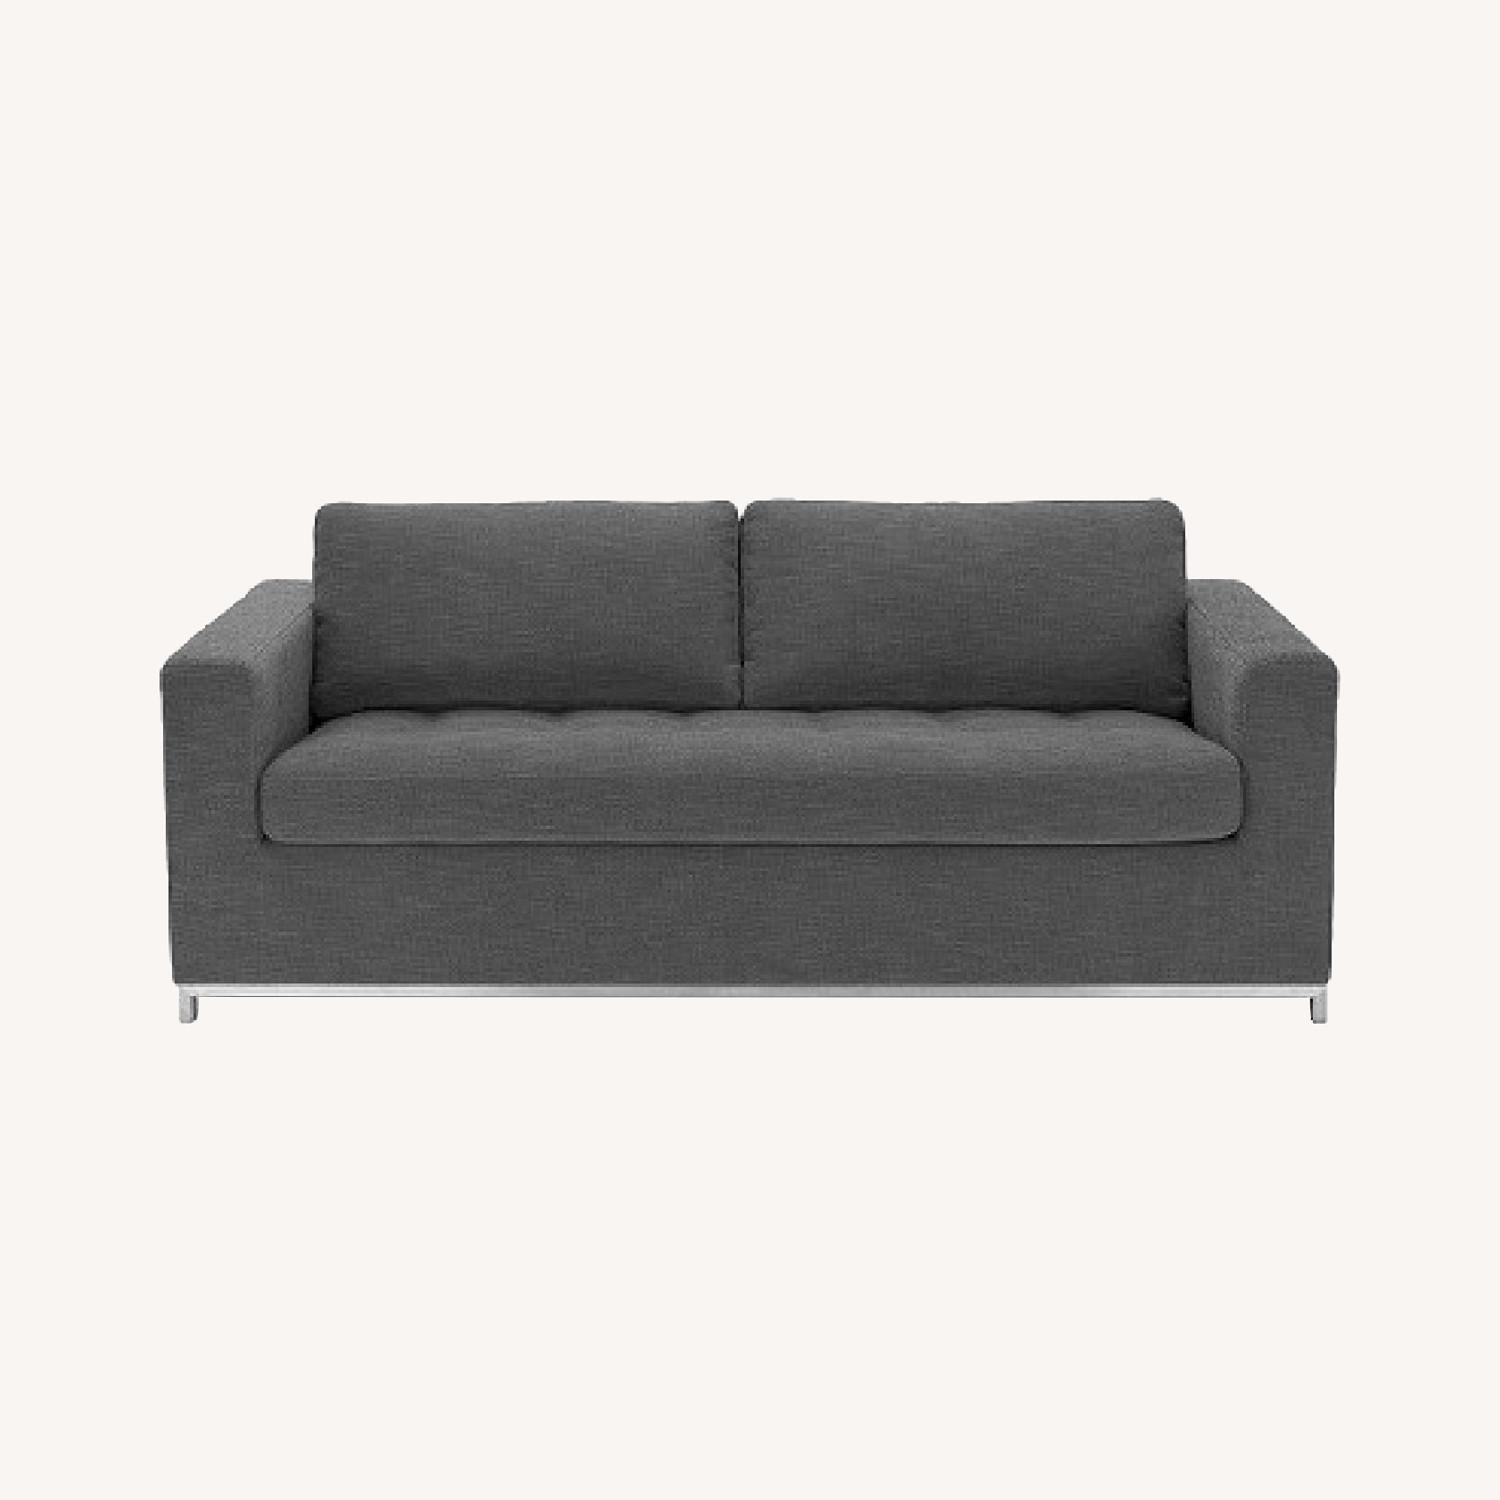 Article Pull Out Sofa (Twilight Grey) - image-0